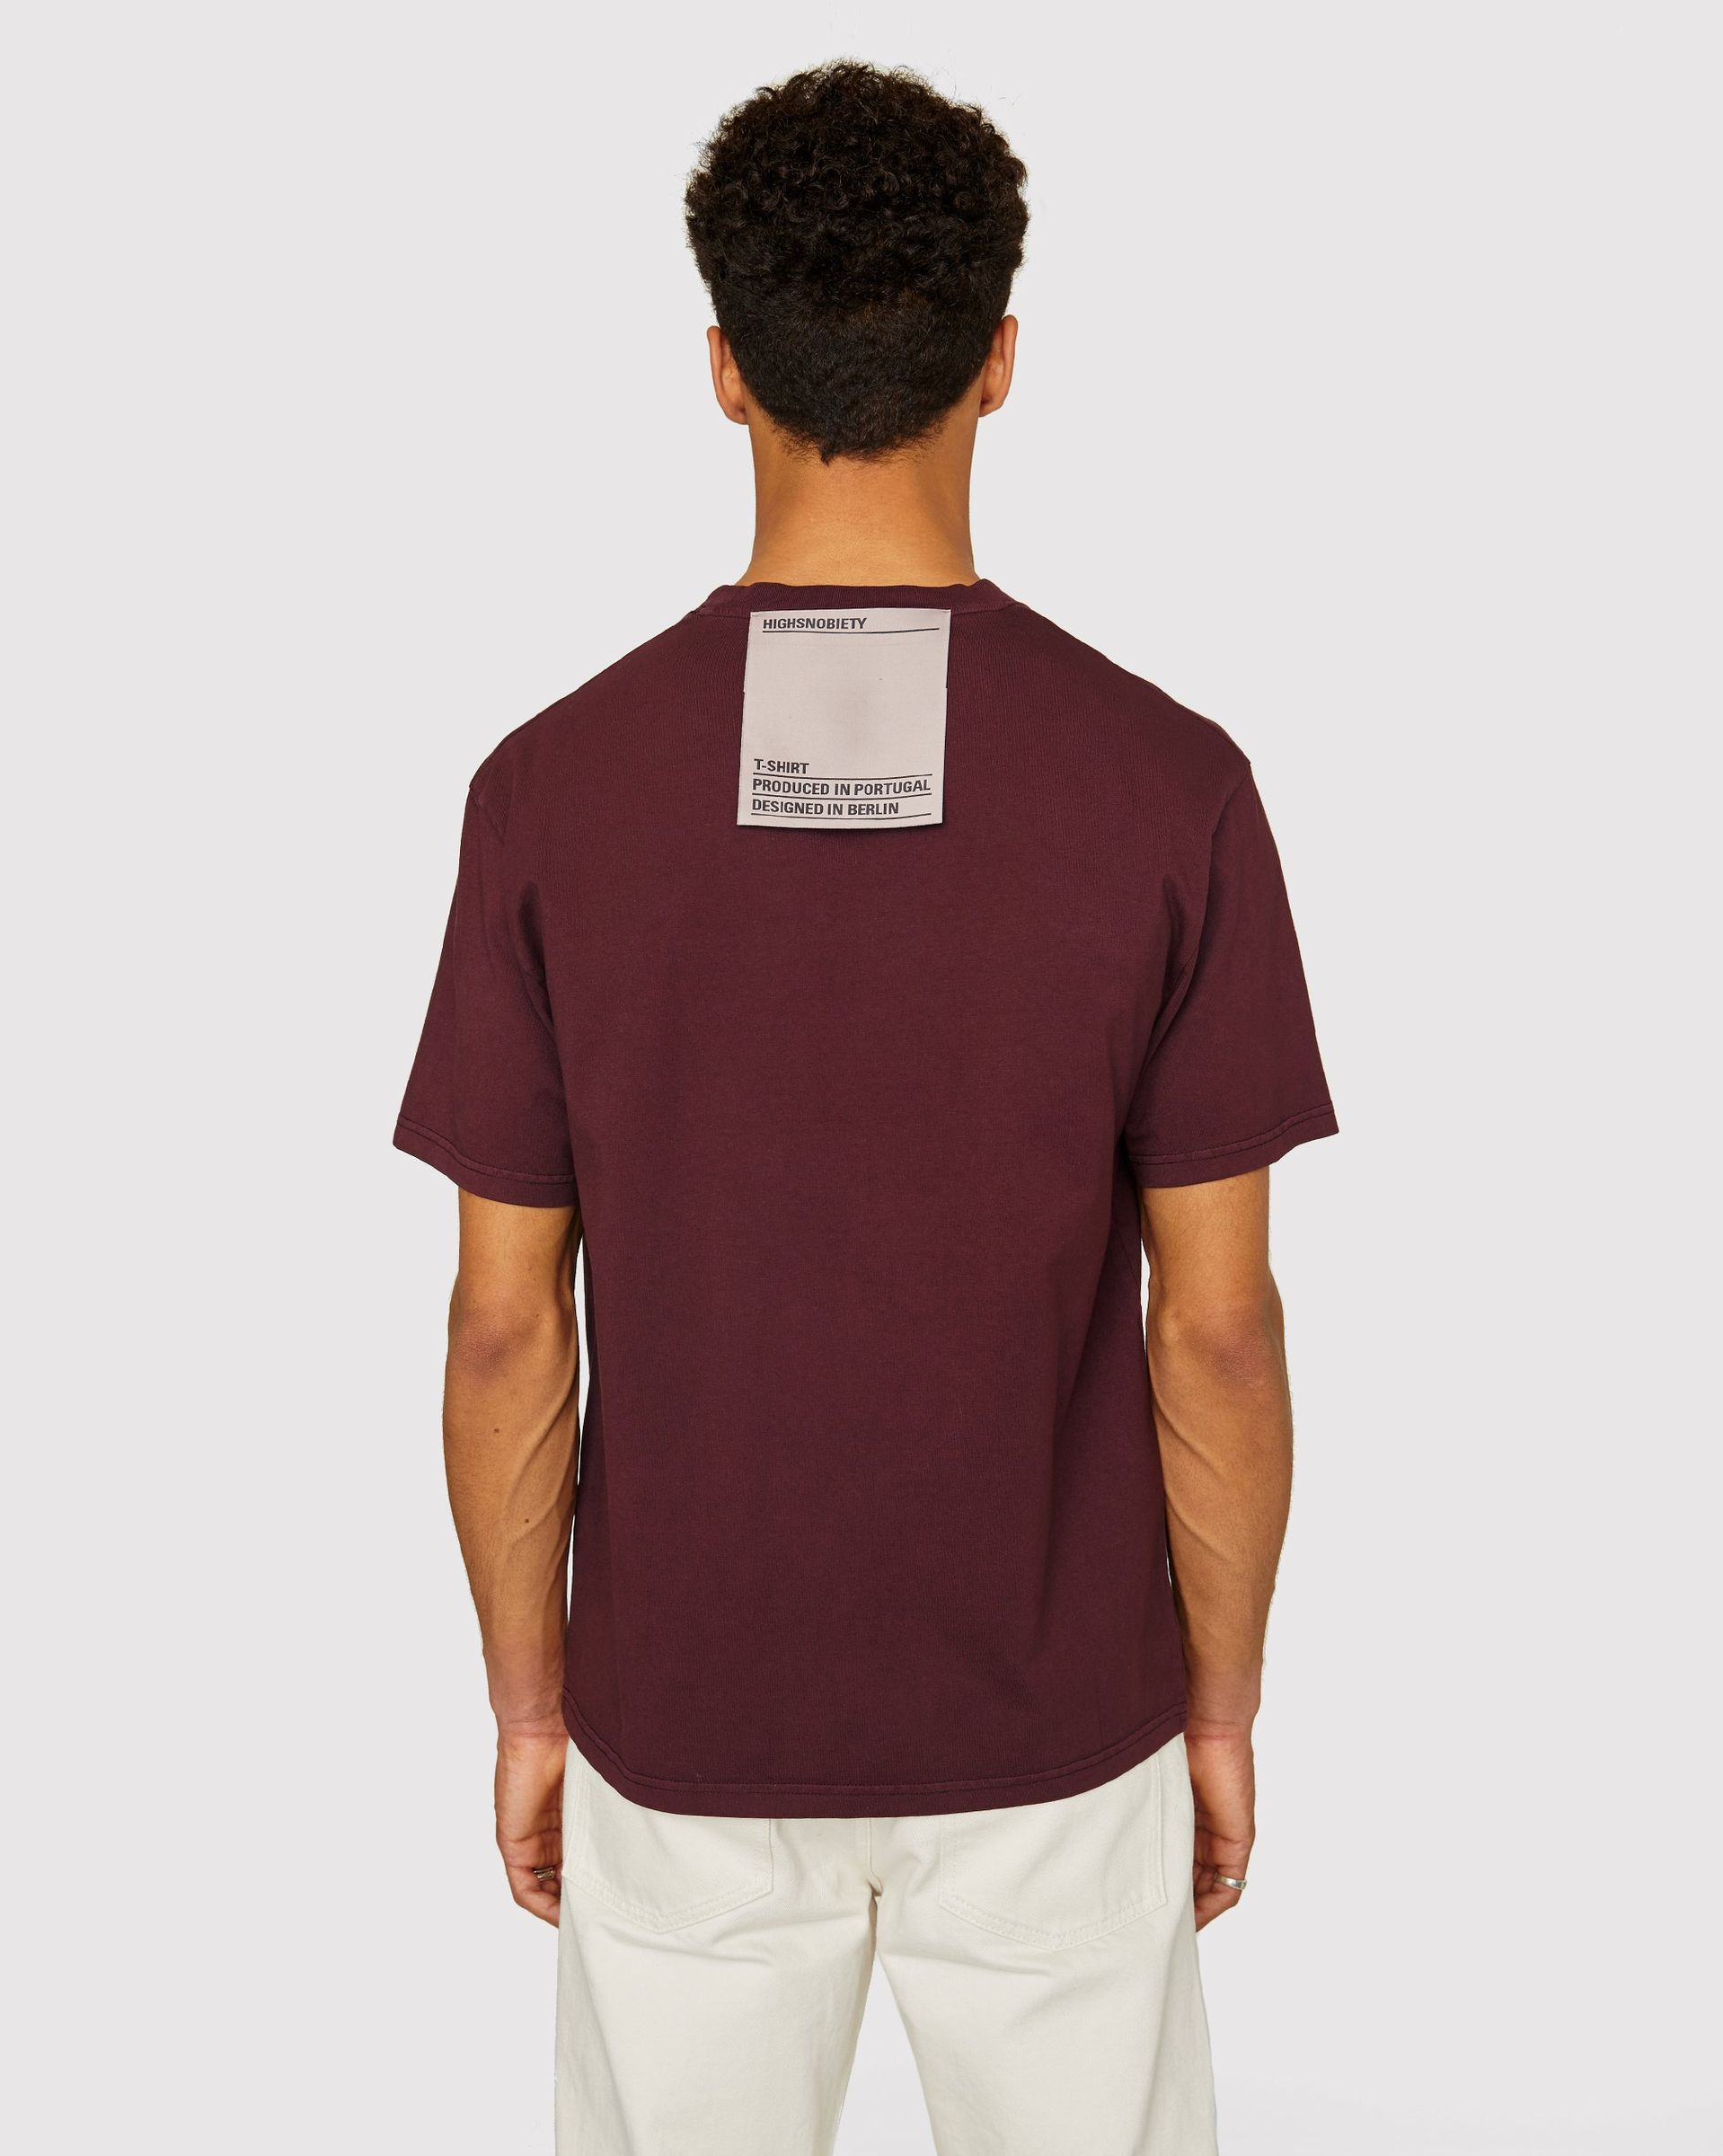 Highsnobiety Staples - T-Shirt Burgundy - Image 3